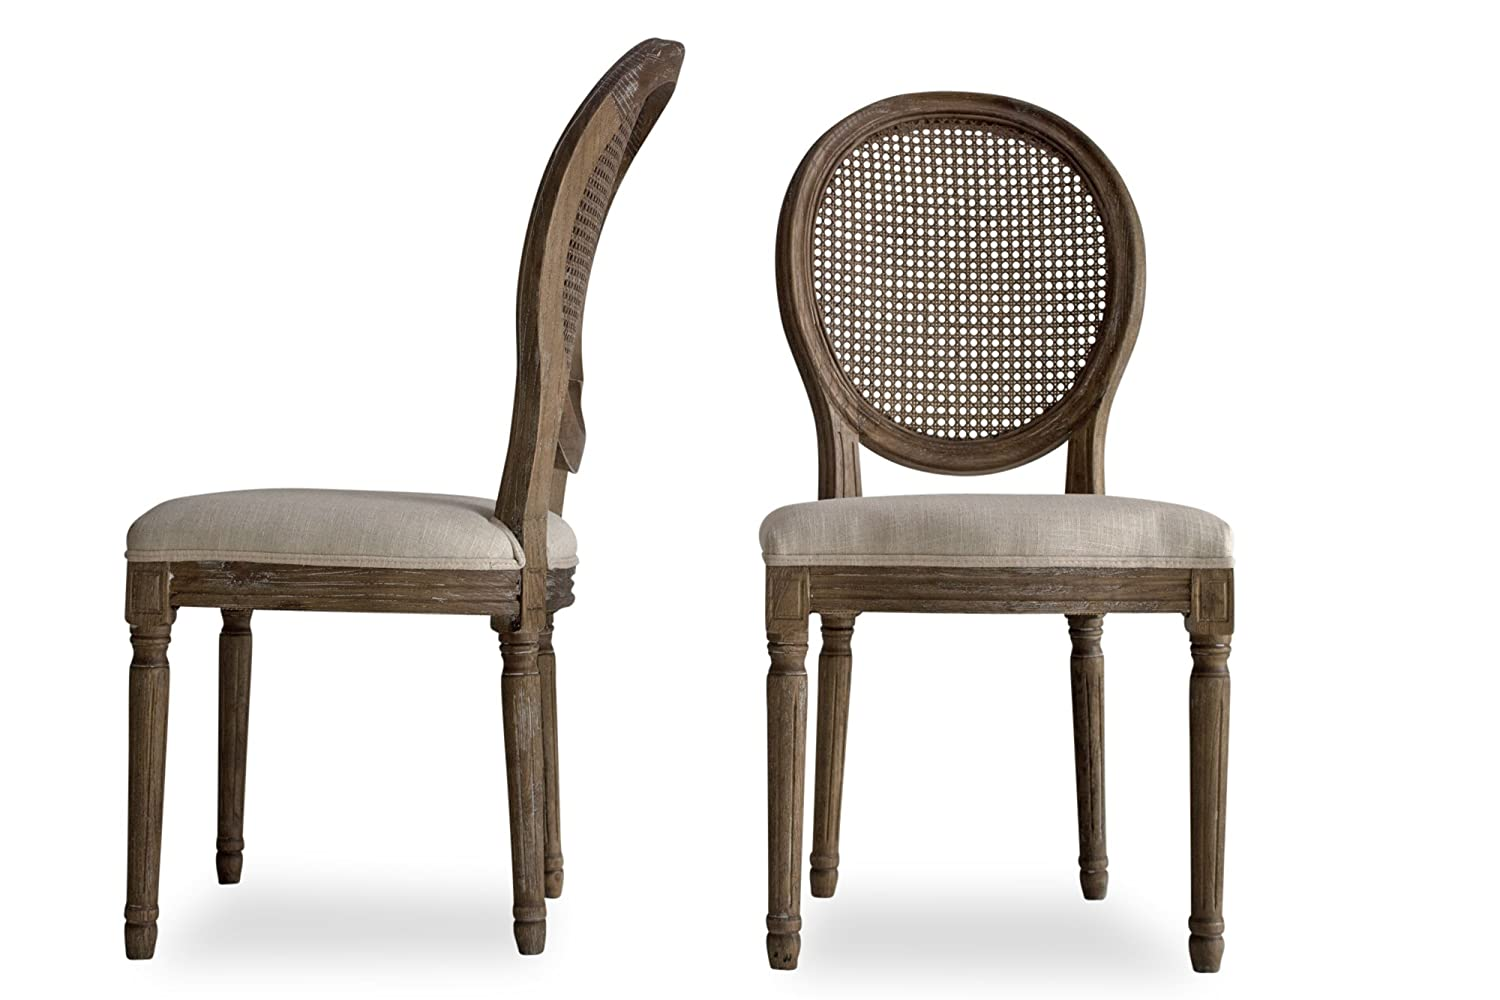 Amazon com carina louis french country upholstered dining chairs cane back dining room chairs beige linen fabric set of 2 chairs